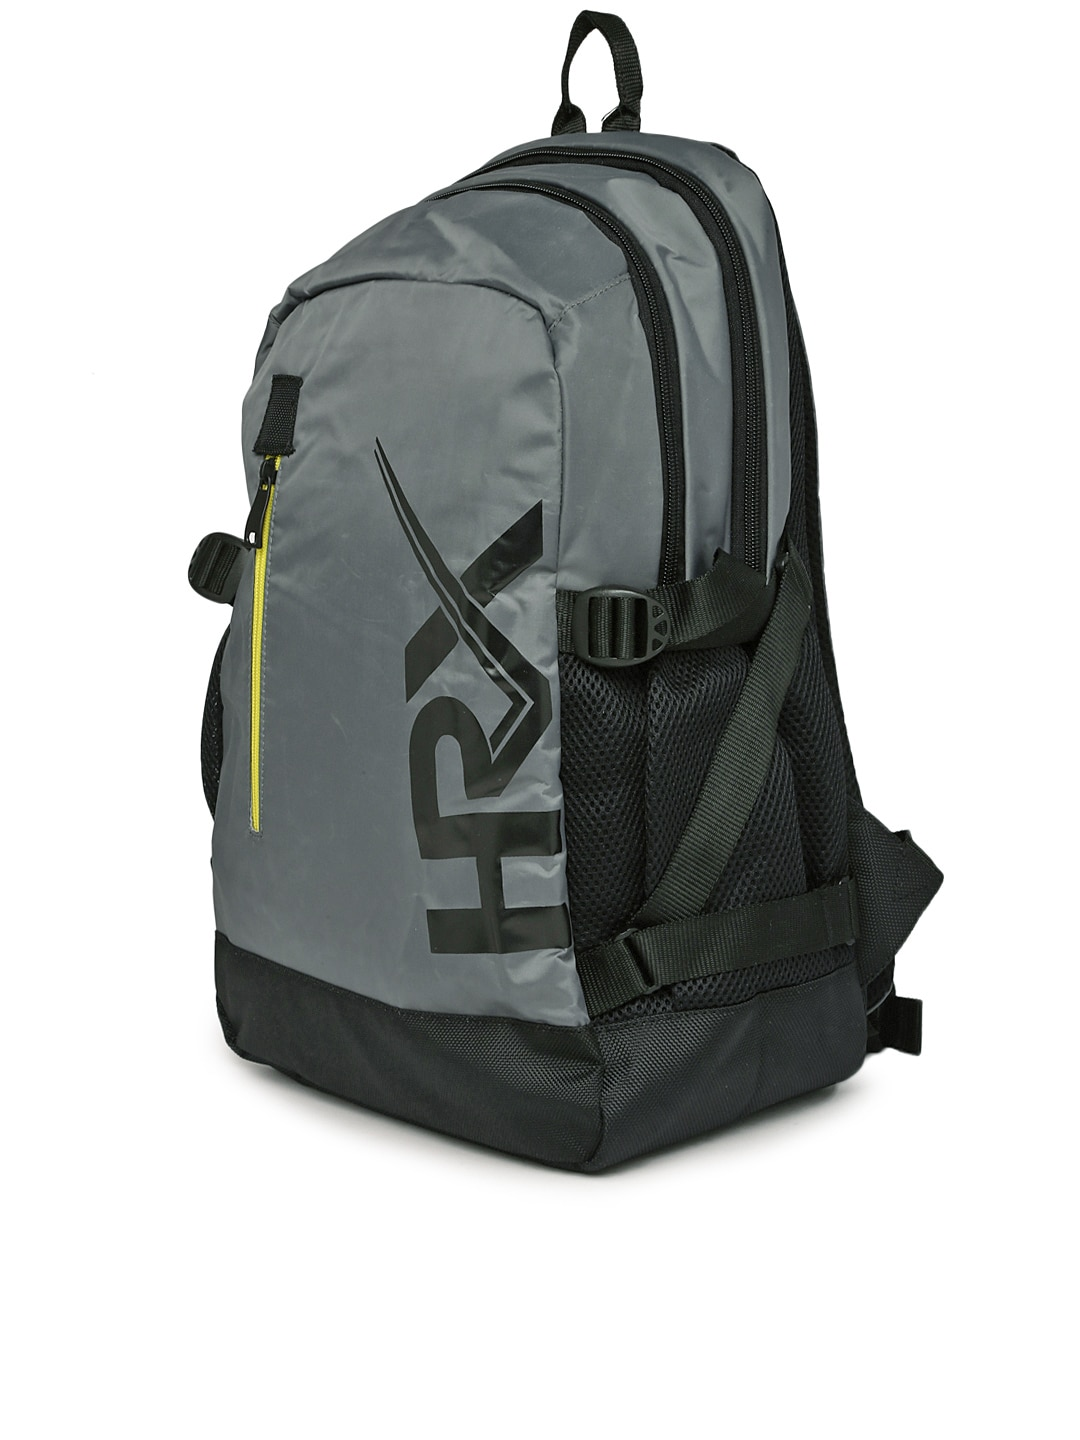 Mens Bags   Backpacks - Buy Bags   Backpacks for Men Online 1e62fe75ab